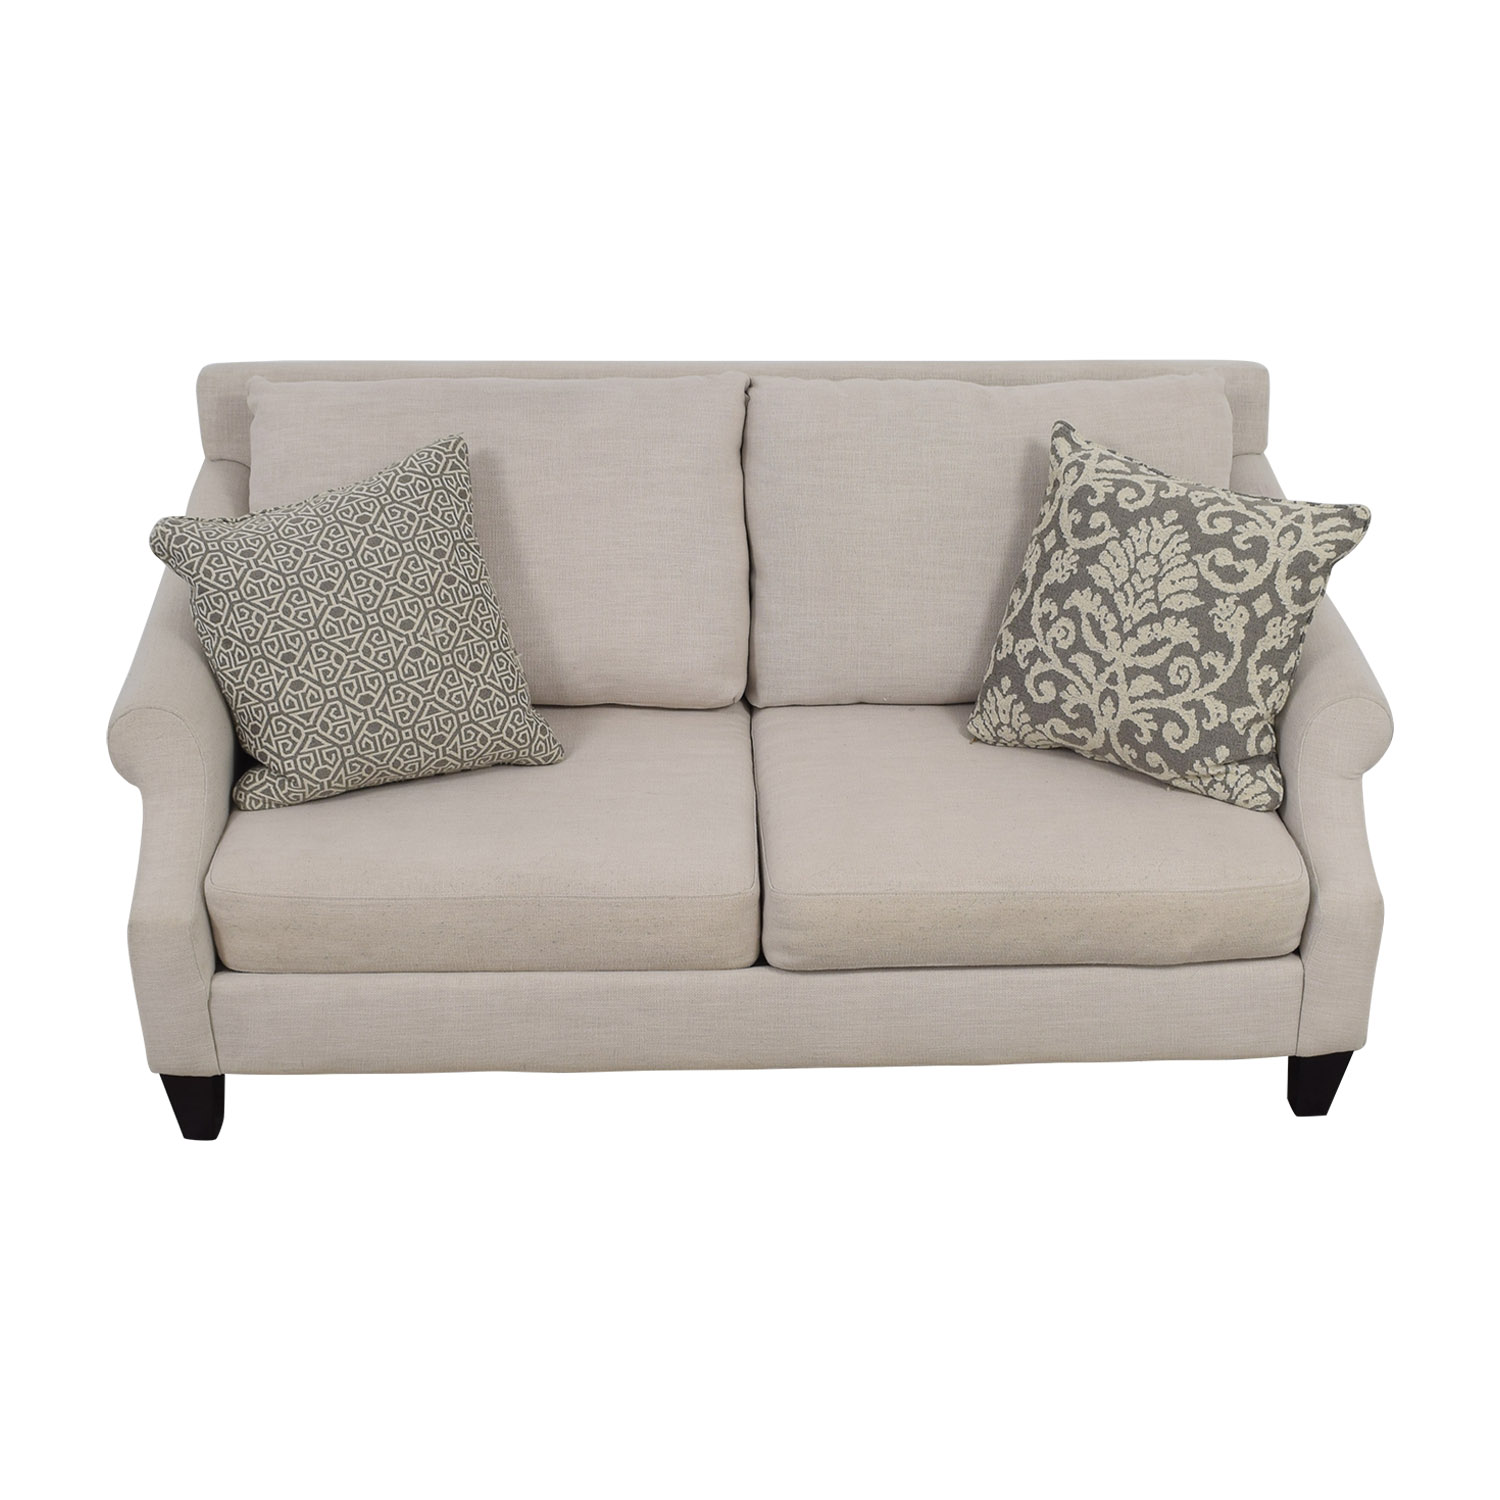 Rooms To Go Rooms To Go Beige Two-Cushion Loveseat used